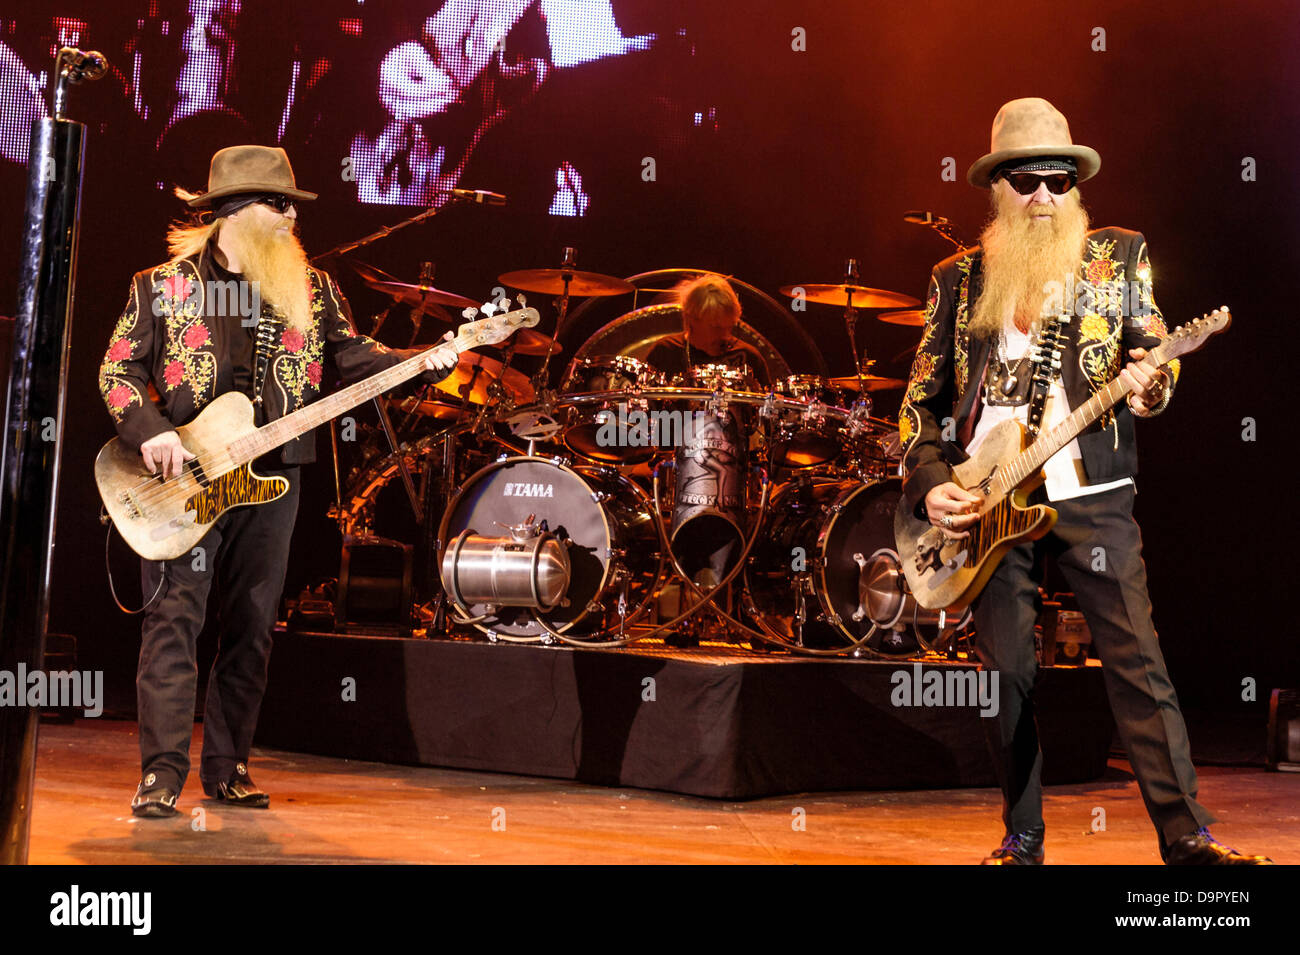 London, UK, 24/06/2013 : ZZ Top plays Hammersmith Apollo. The band consists of guitarist and lead vocalist Billy - Stock Image